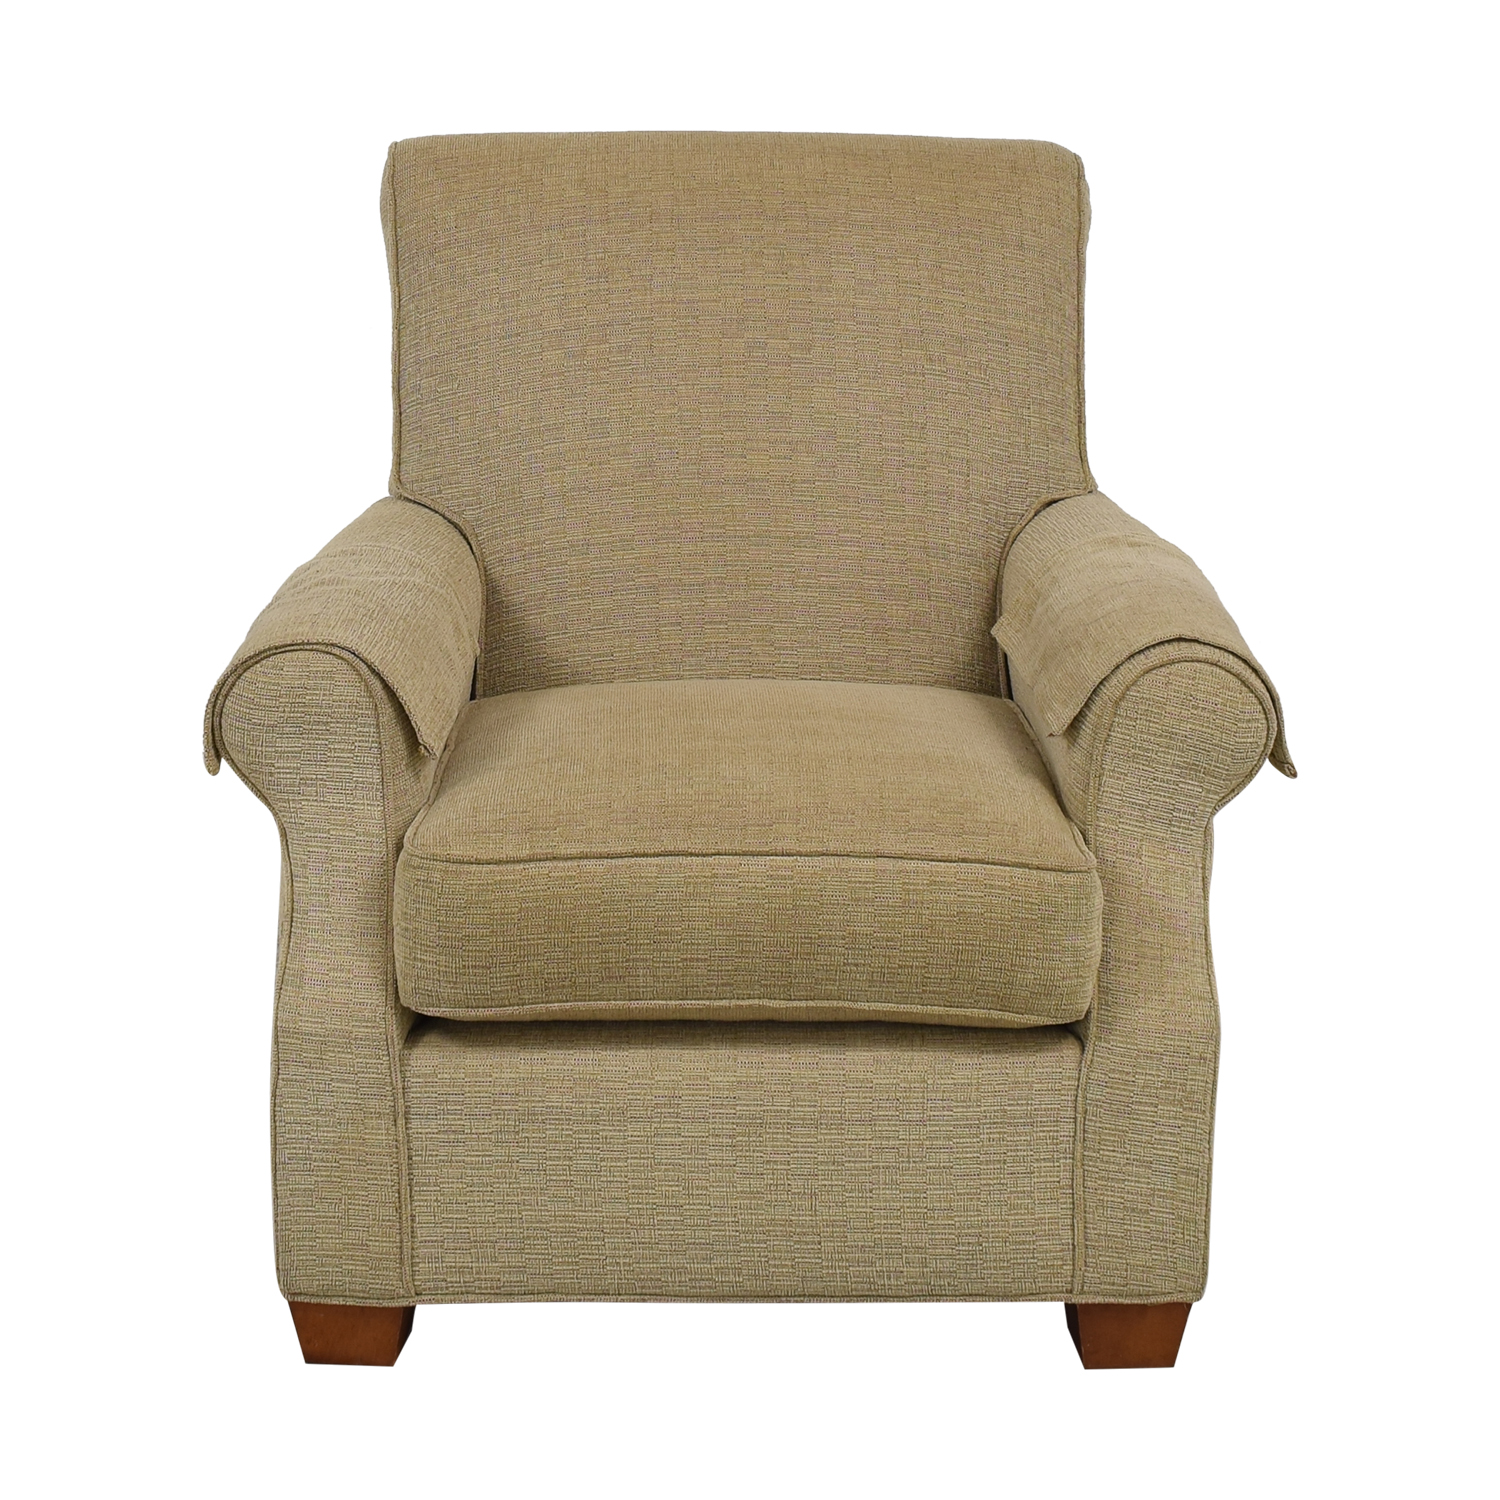 Macy's Macy's Upholstered Accent Chair Chairs